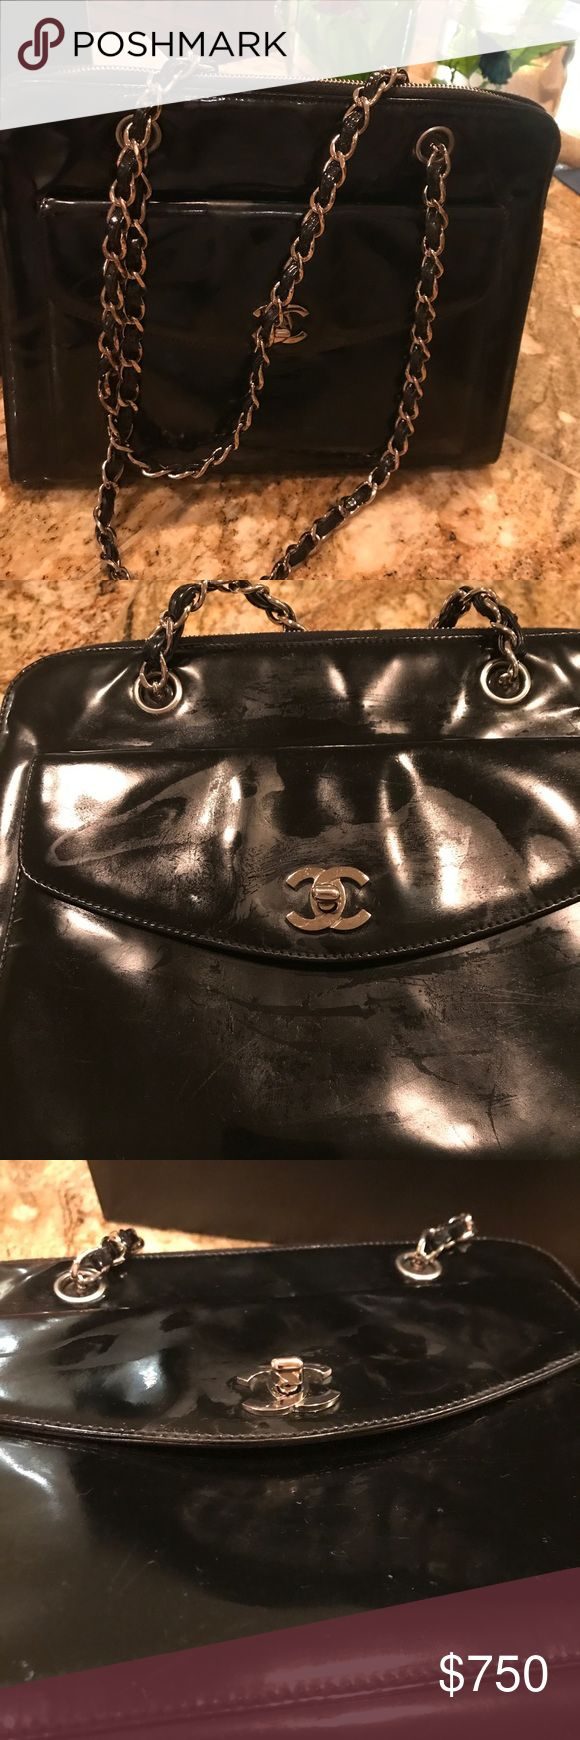 Authentic Chanel patent bag. Extra pics of flaws Please see my other listing for more information. This post is foe added pictures showing scratches and rubbing off of shiny coat. Can be fixed by a cobbler or by Chanel. Price is low due to this flaw. However hard to see and still beautiful I want you too see. Thanks CHANEL Bags Totes